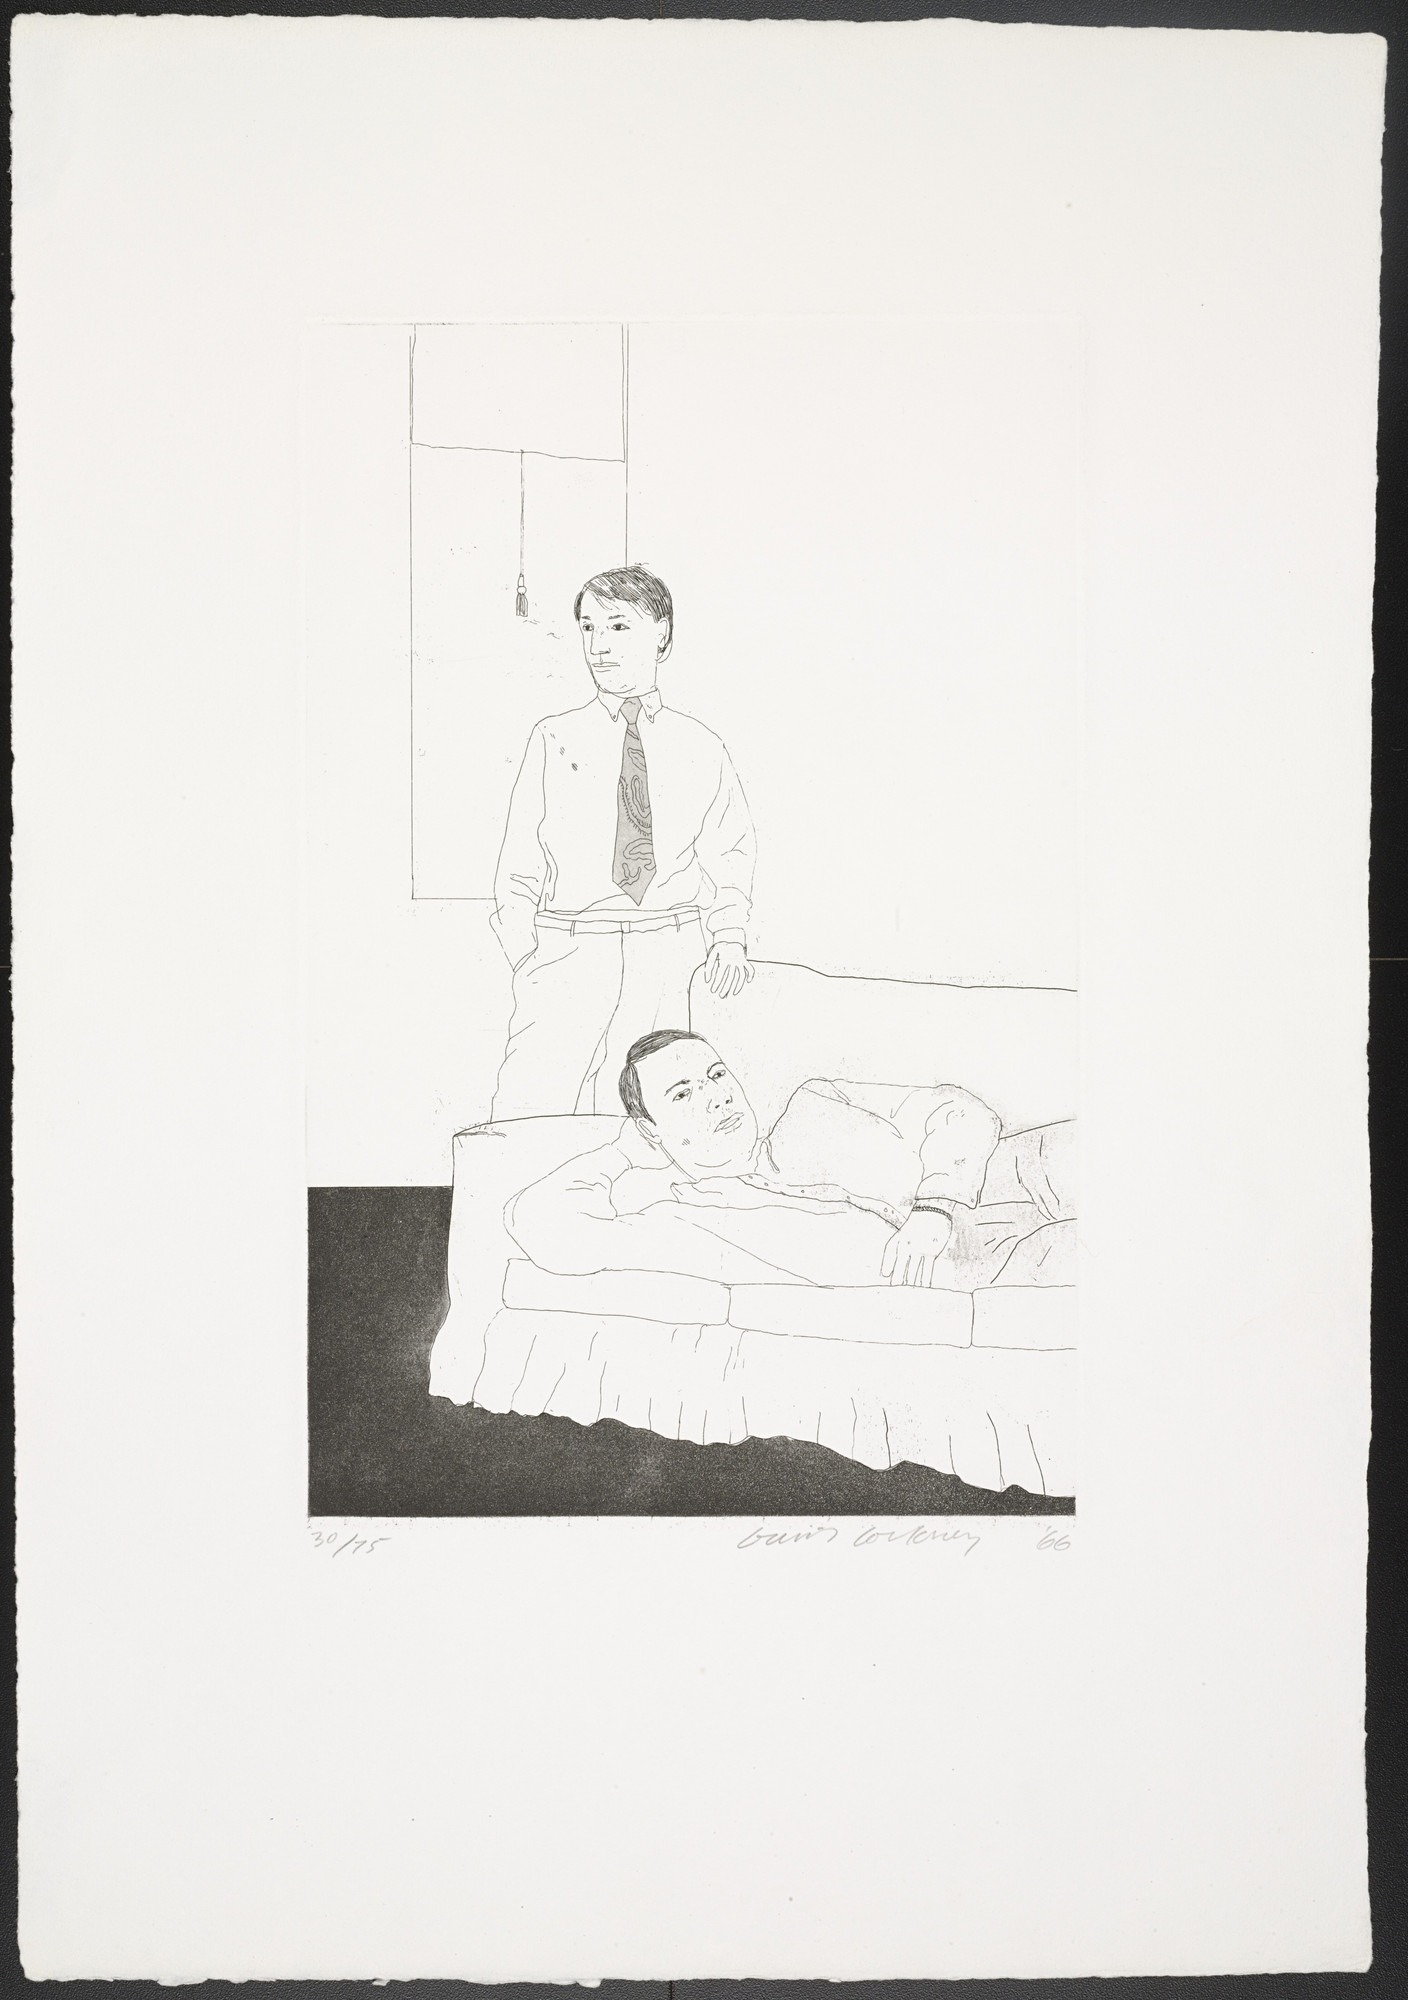 David Hockney. Beautiful and White Flowers from Fourteen Poems. 1966, published 1967